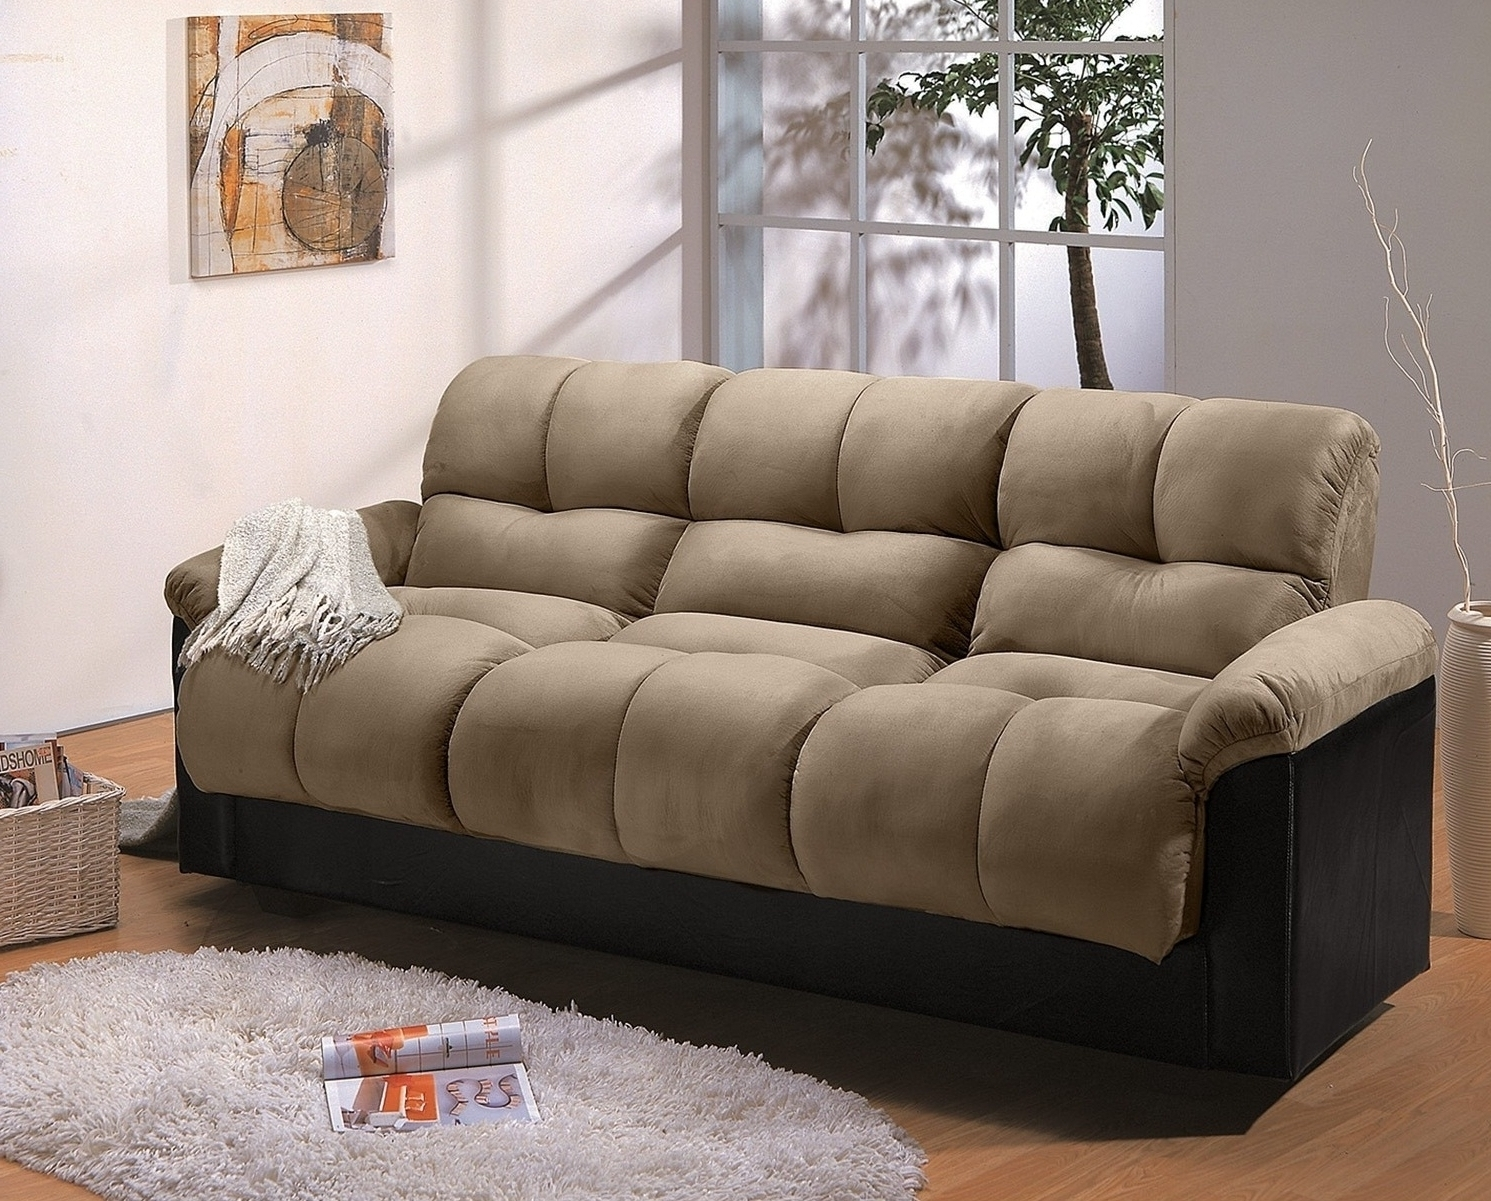 Popular Lazy Boy Sectional Sofa Grand Home Furnishings — The Home Redesign Within Grand Furniture Sectional Sofas (View 12 of 20)